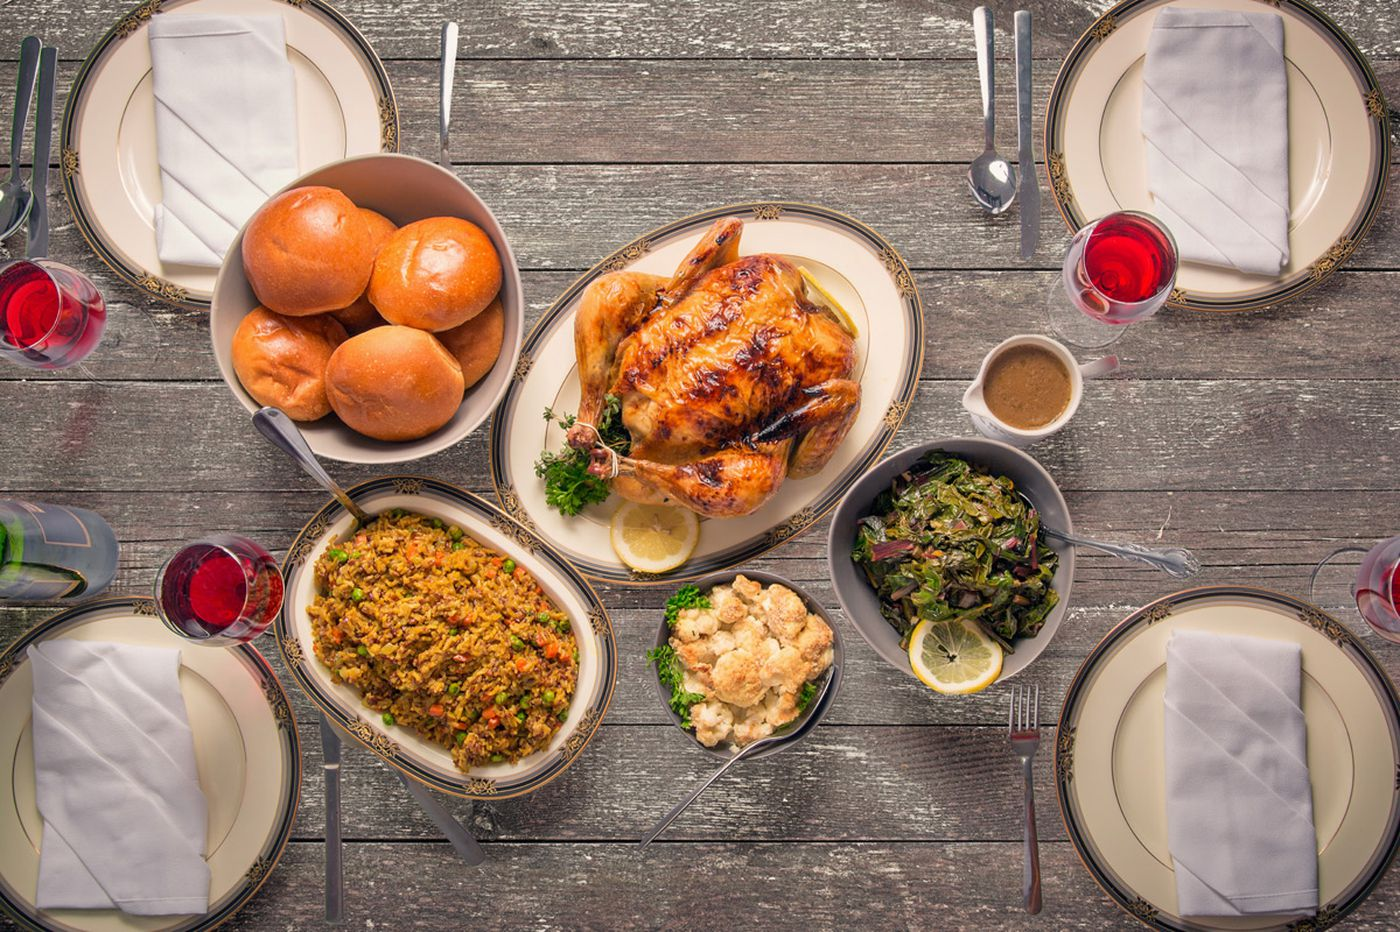 Commentary: Anticipating the Thanksgiving gathering